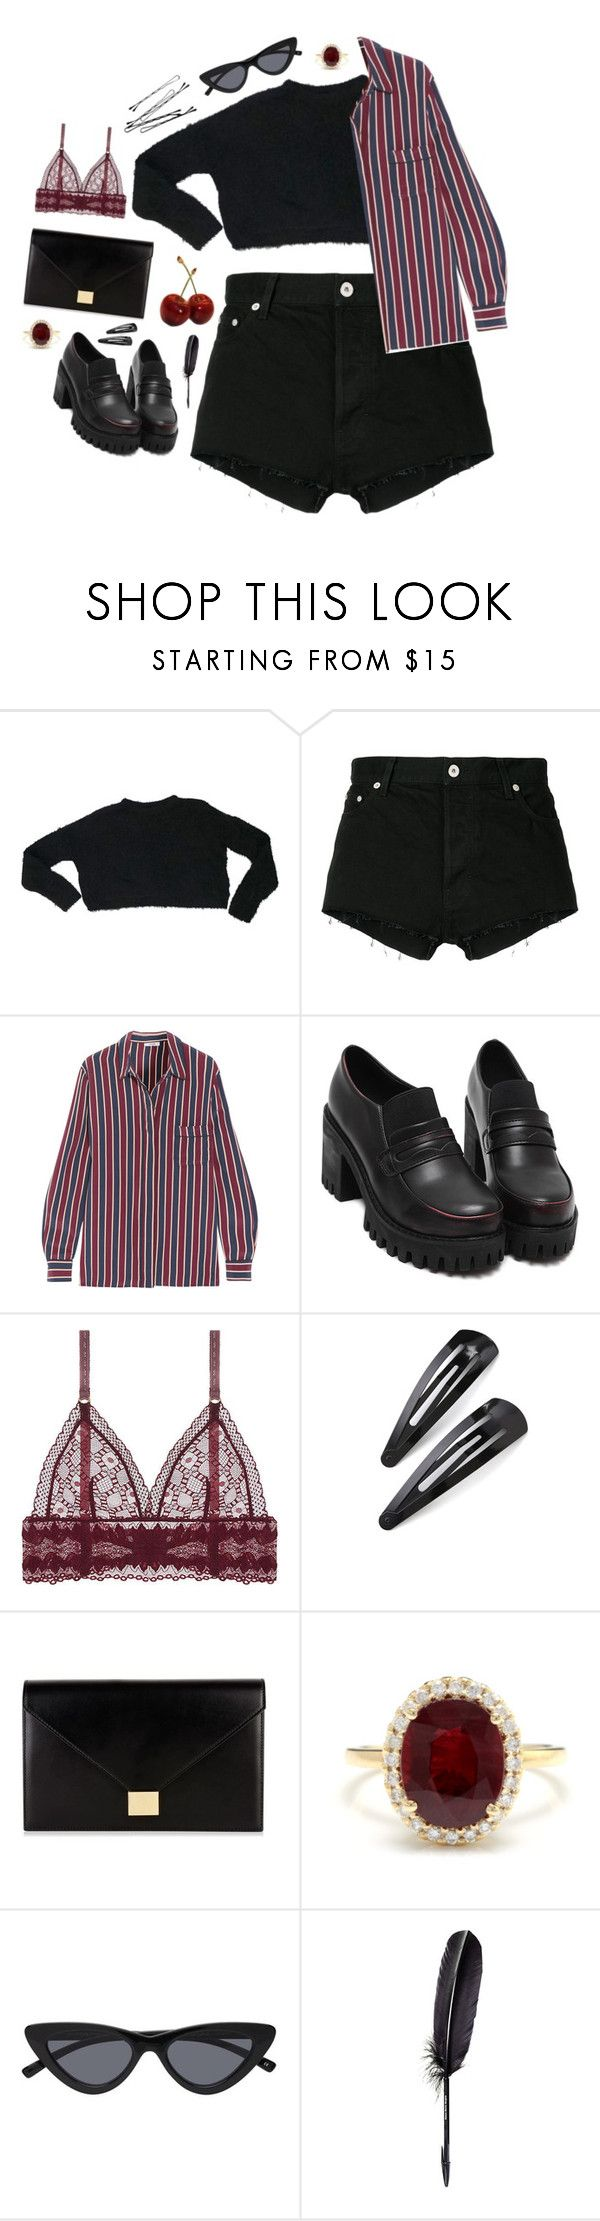 """""""Married"""" by mode-222 ❤ liked on Polyvore featuring ASOS, Heron Preston, Ganni, STELLA McCARTNEY, Adia Kibur, Victoria Beckham, Other and Maison Margiela"""